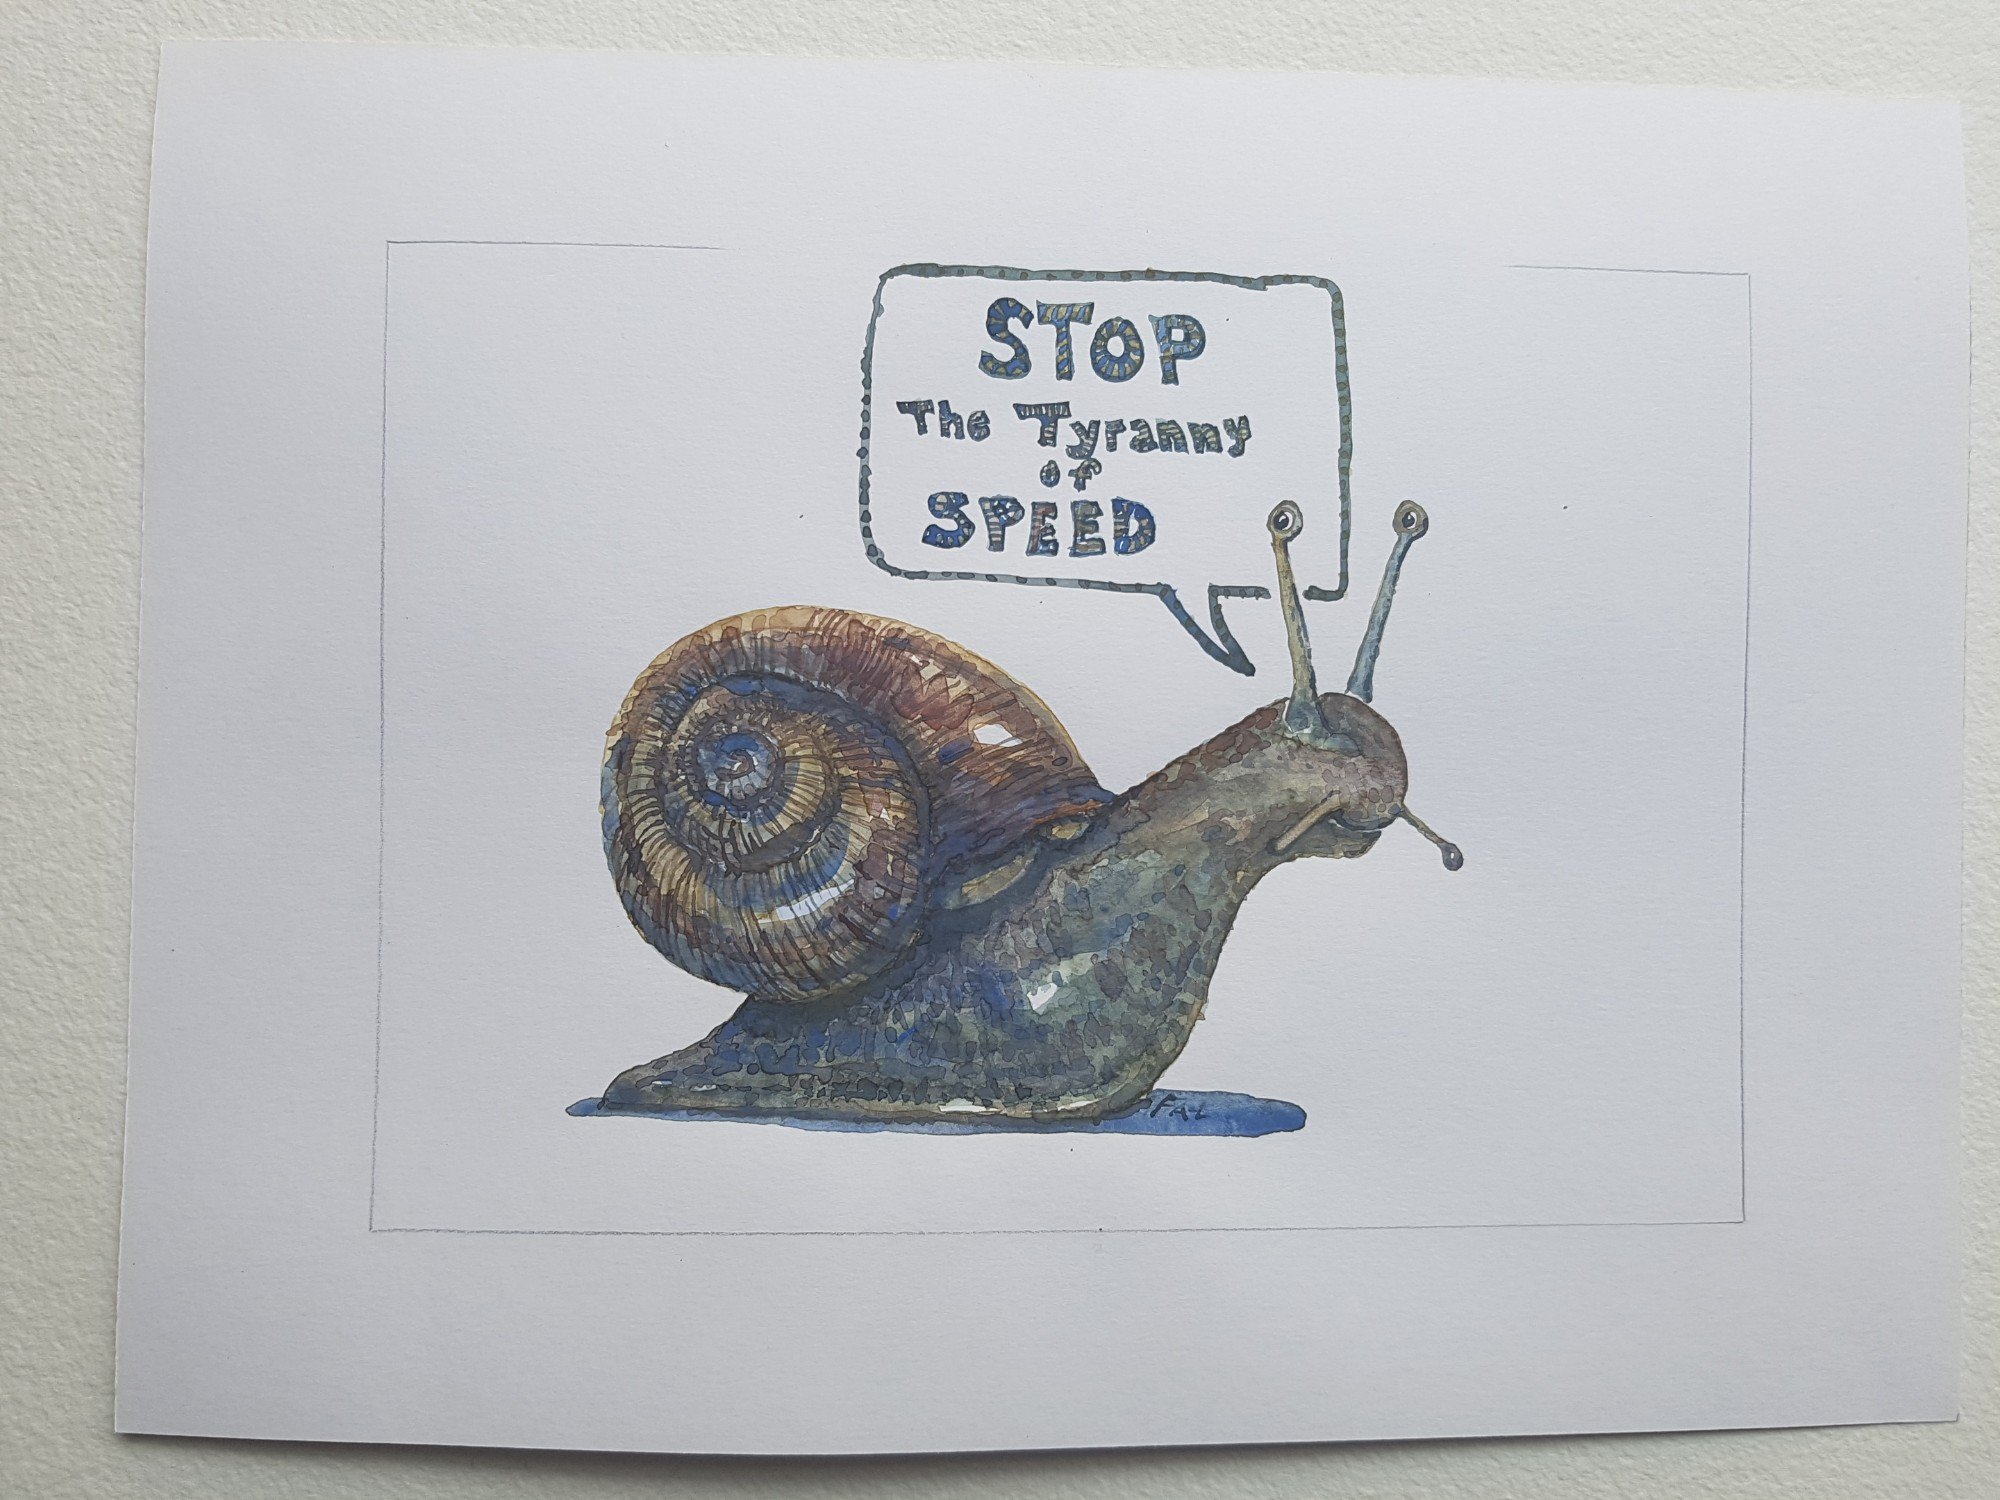 2000x1500 Original Snail Speak Speed Watercolor Frits Ahlefeldt Tictail